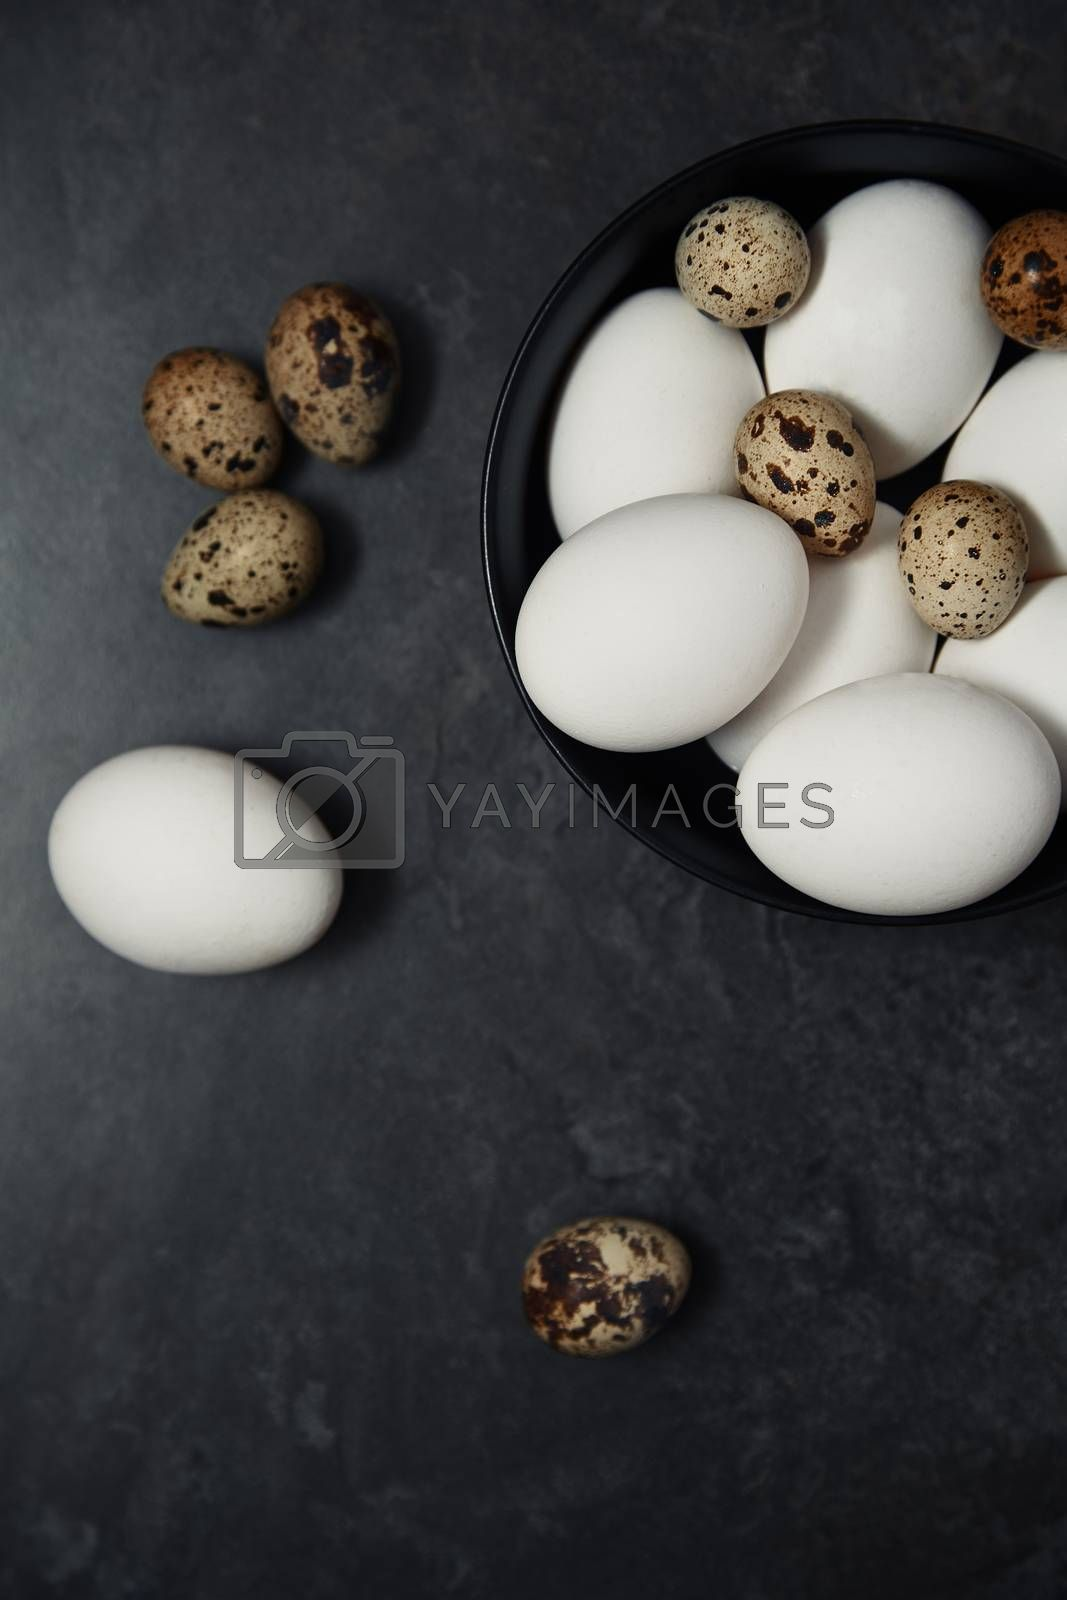 Quail and chicken eggs on a table